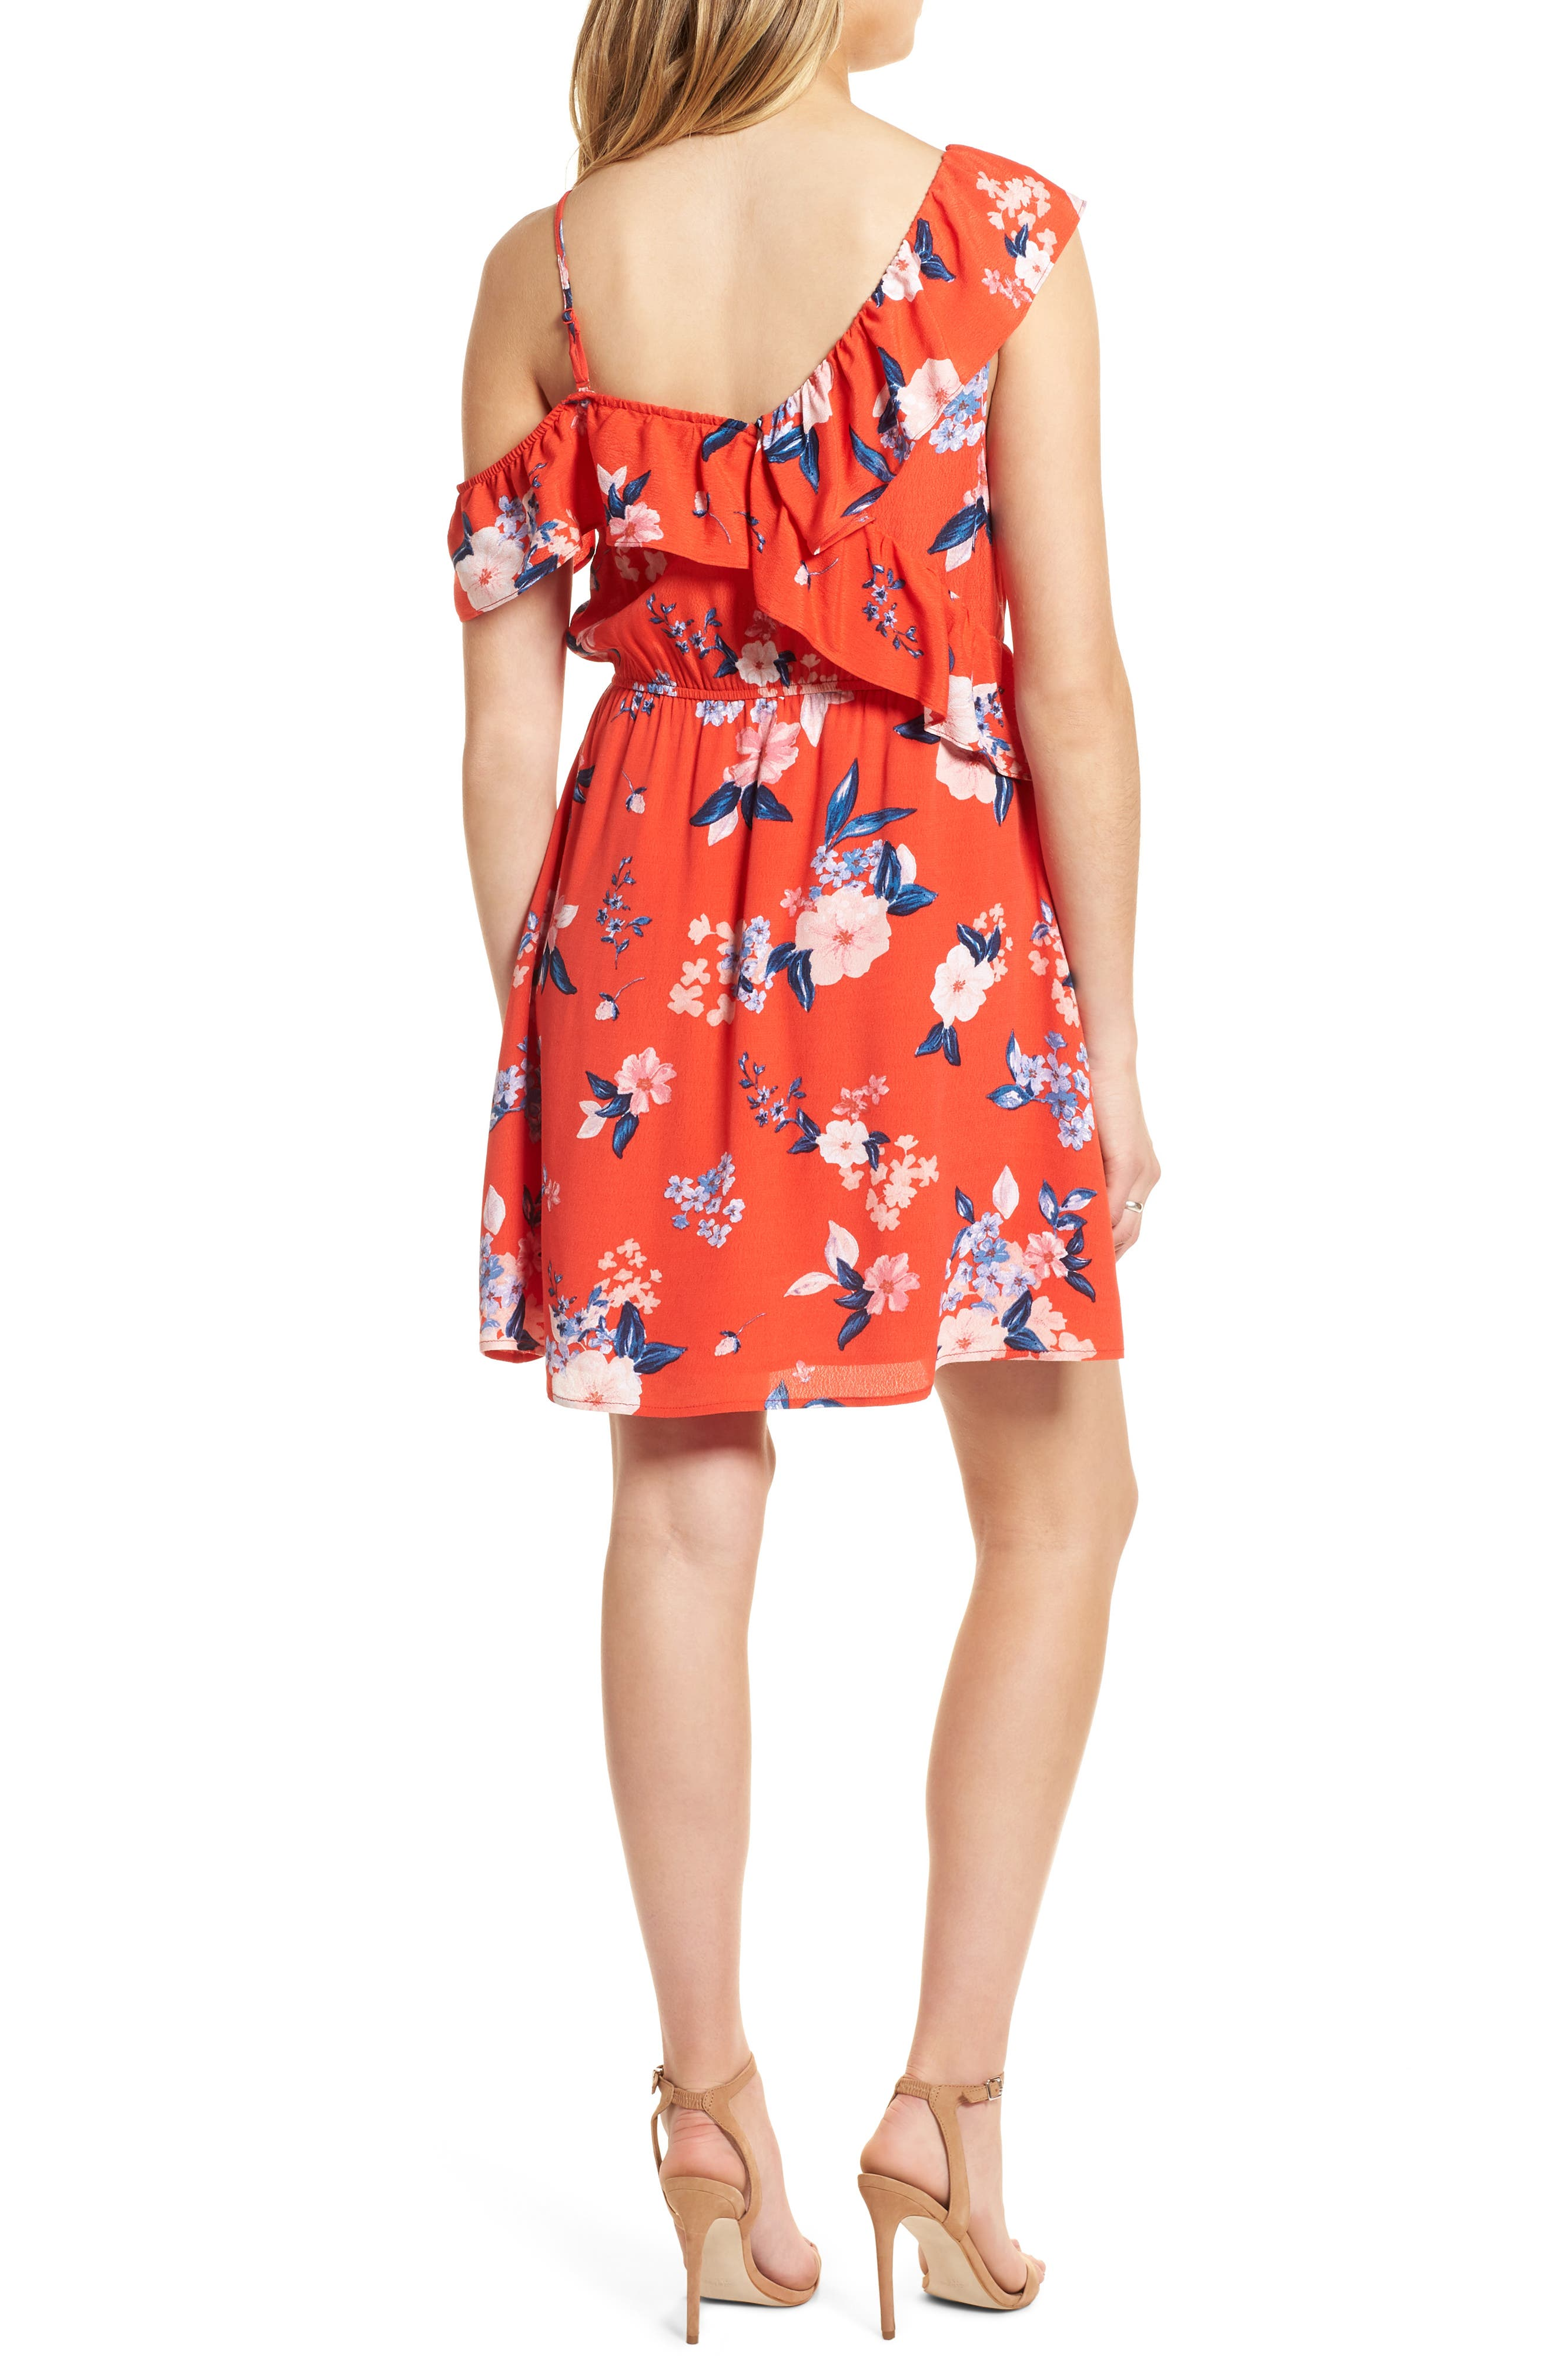 Cordetta Floral Asymmetrical Ruffle Dress,                             Alternate thumbnail 2, color,                             Poppy Red